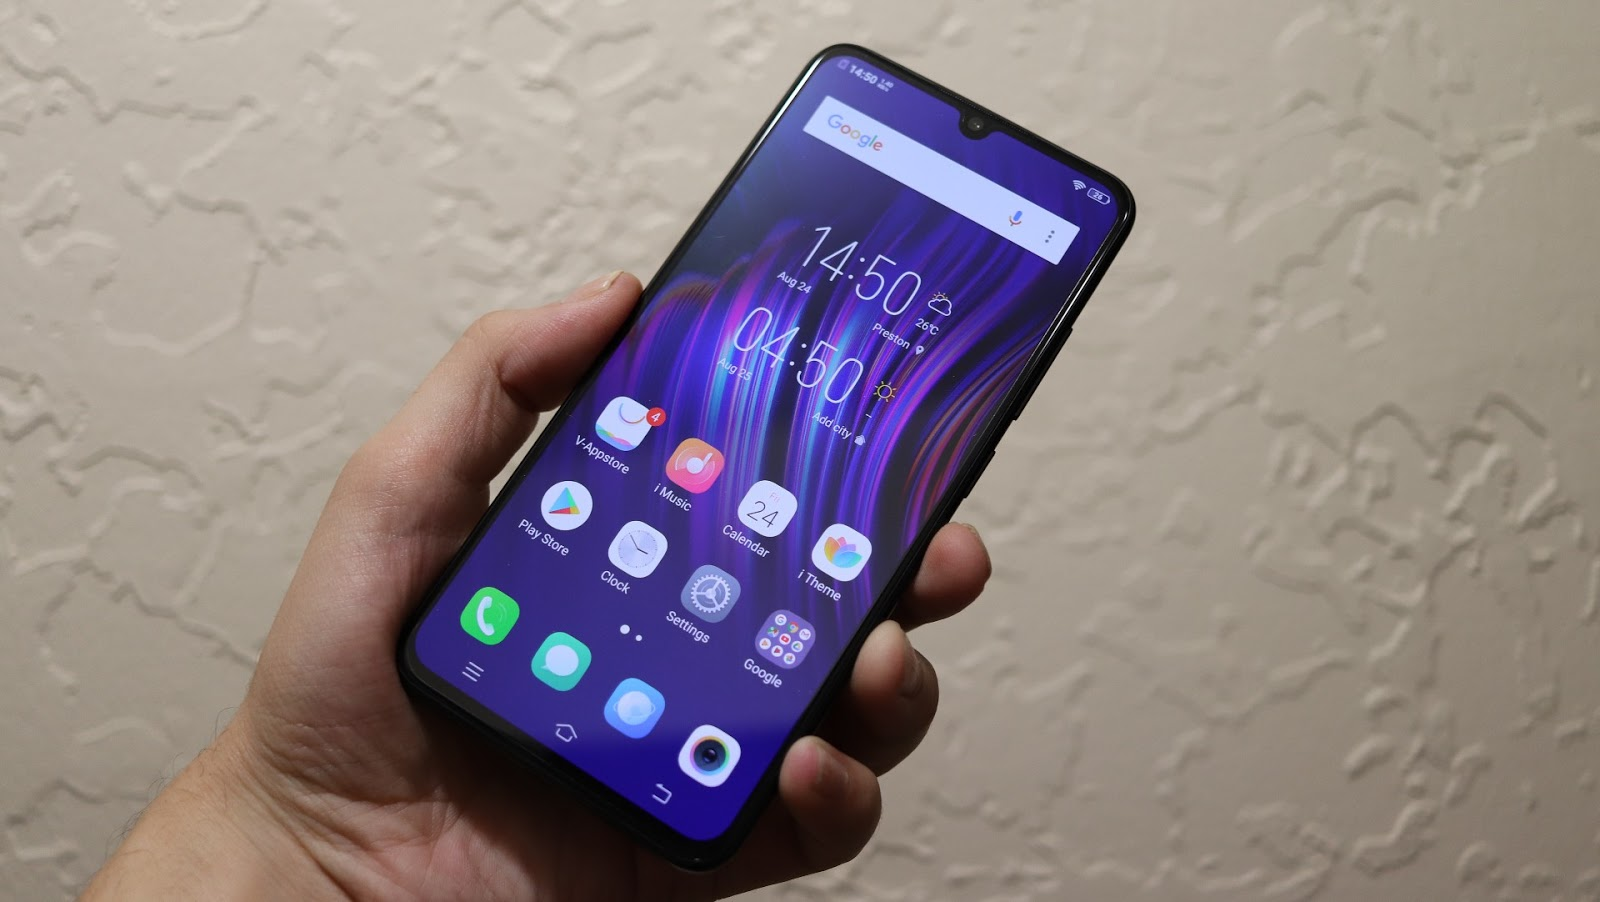 Vivo V11 Pro Launch In India Only At 25,990 /- - NB IDEAS